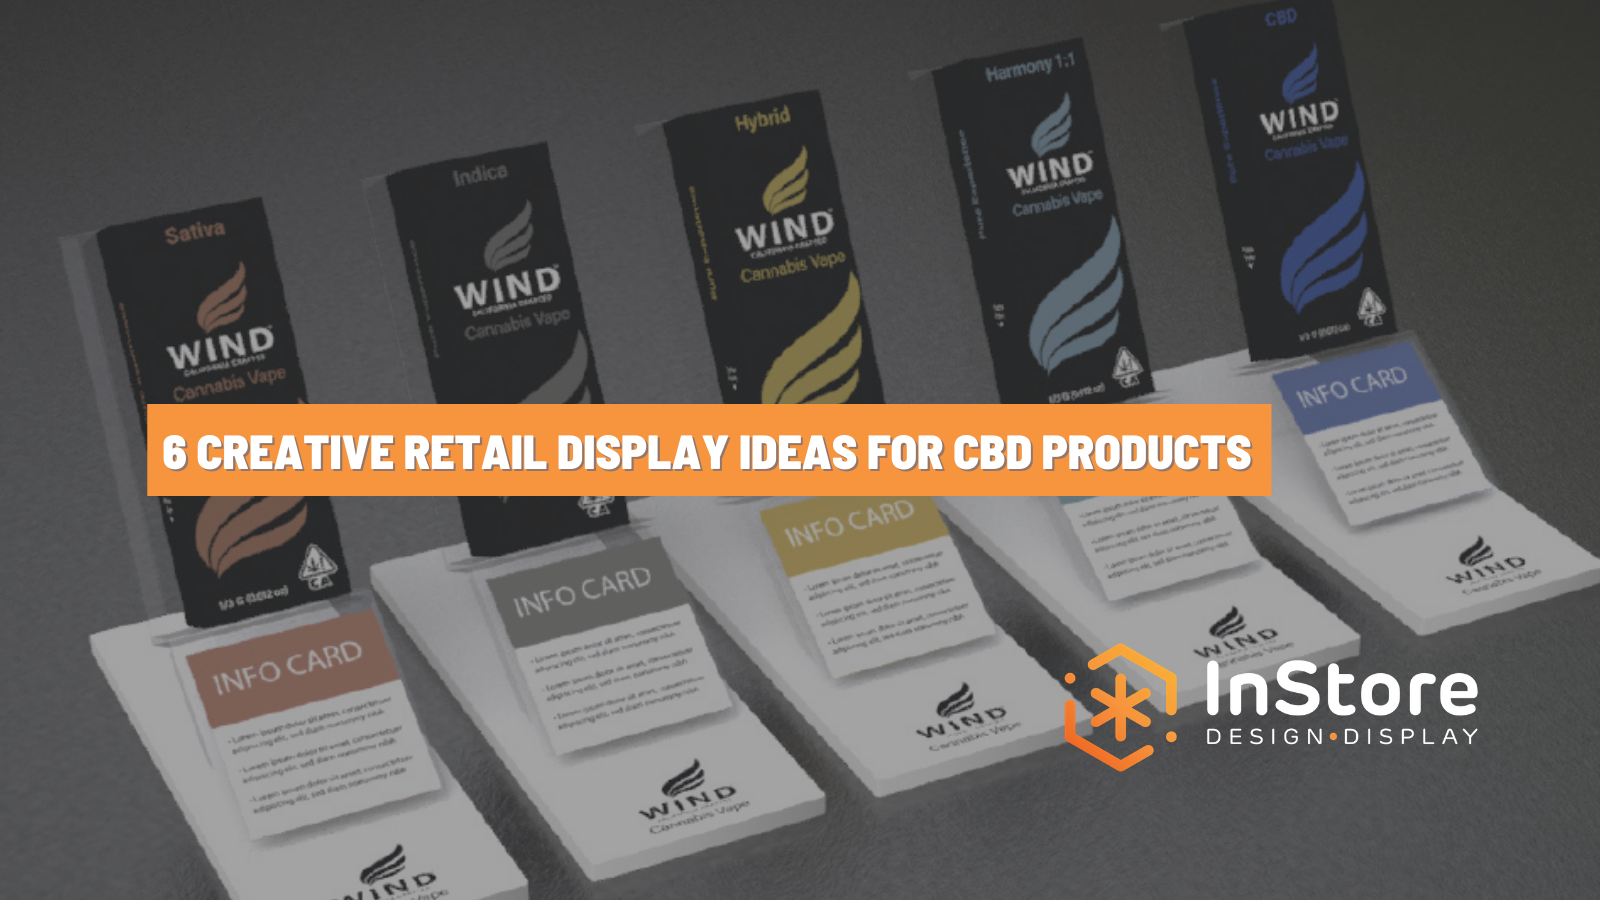 6 Creative Retail Display Ideas for CBD Products